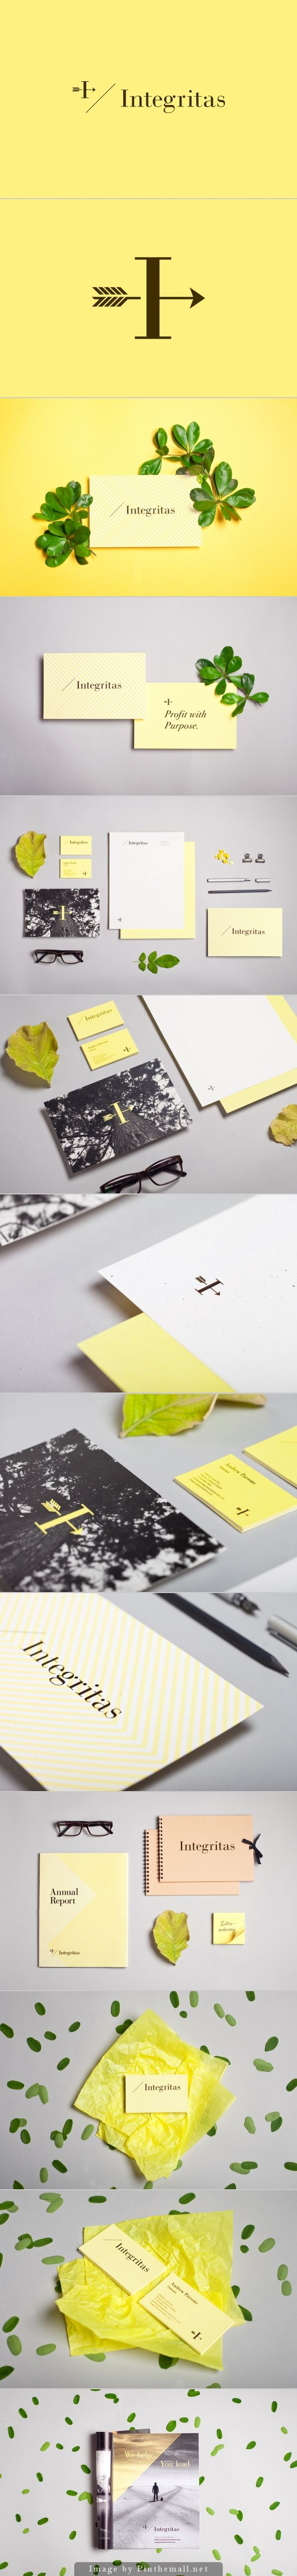 Branding stationary corporate identity business card letterhead cup bag packaging napkins logo type minimal yellow black pattern graphic design